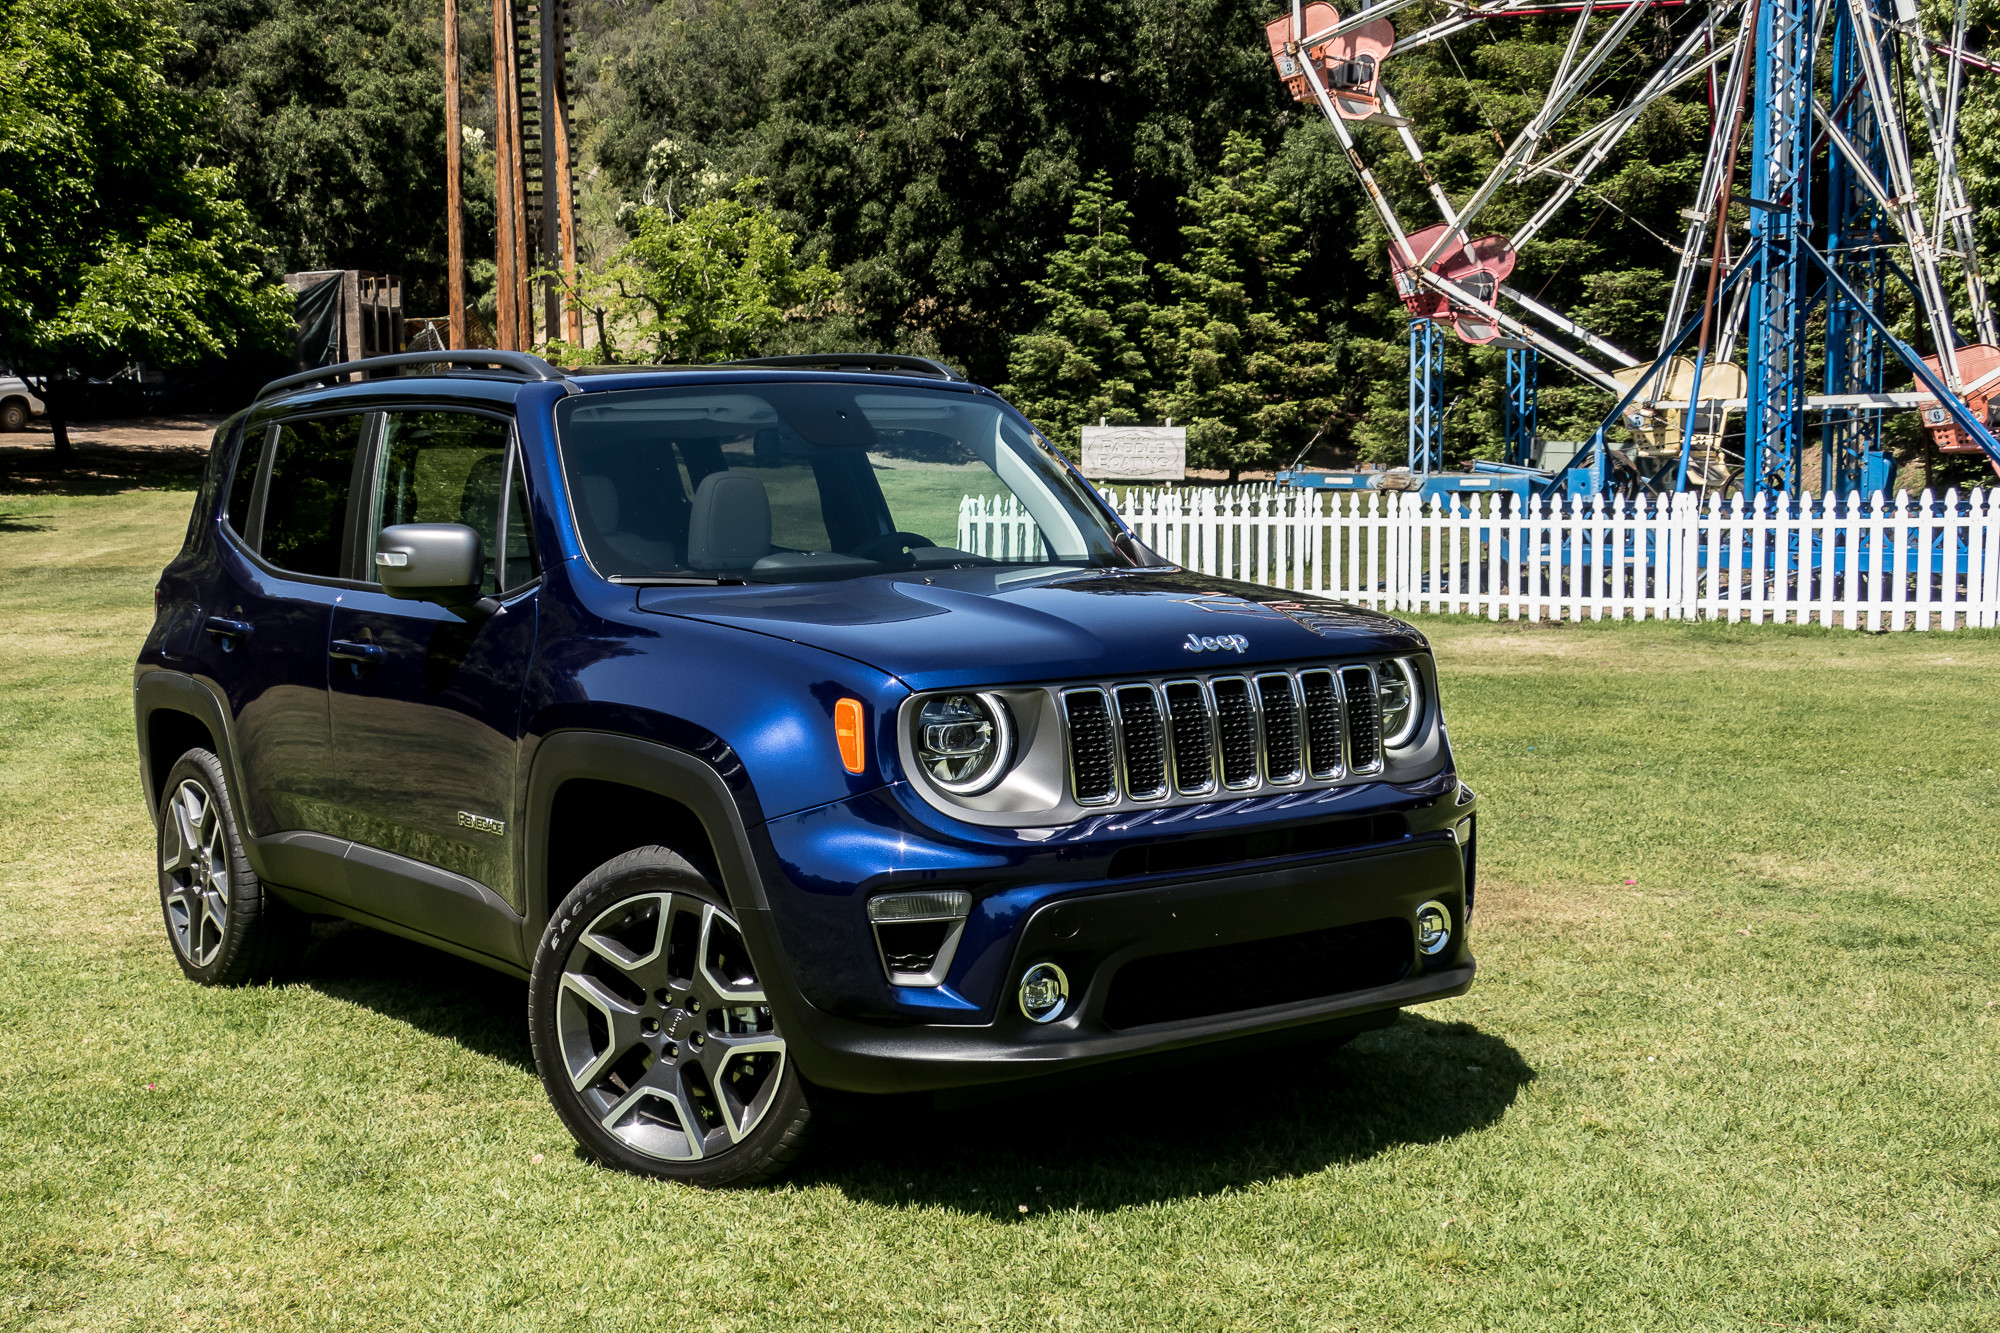 2020 Jeep Renegade Hybrid Debut Details >> 2019 Jeep Renegade Quick Spin A Fun Small Suv With A Big